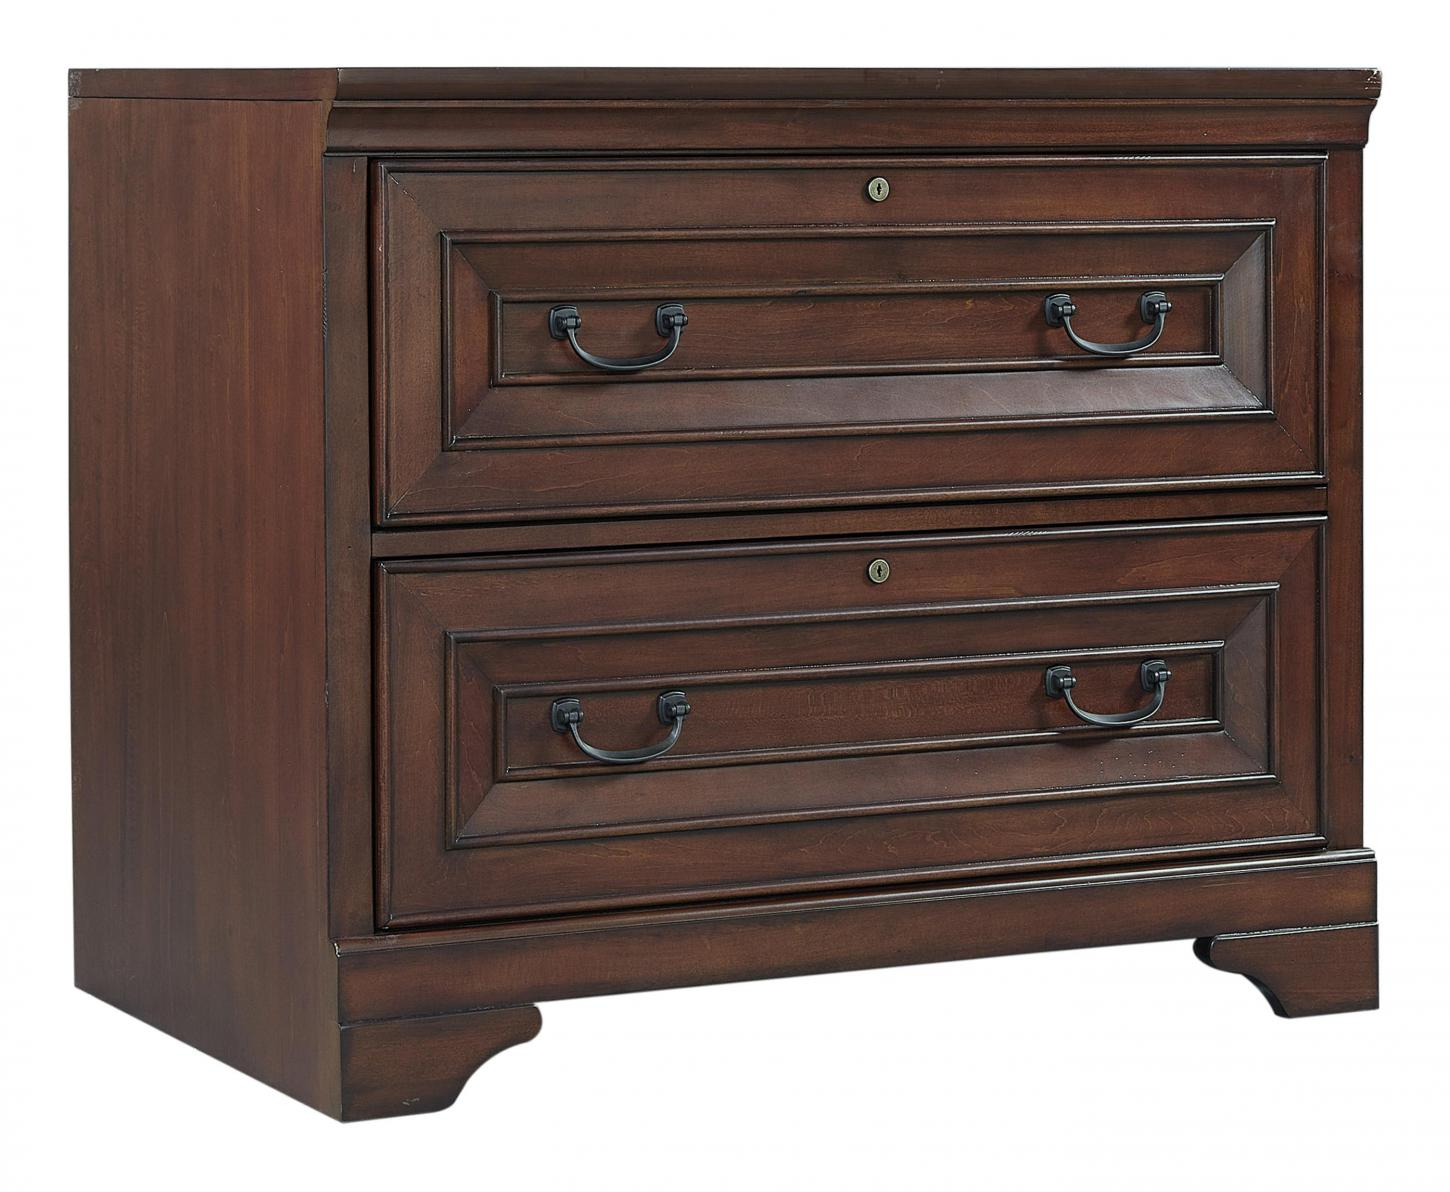 Aspenhome Furniture Richmond Lateral File Cabinet